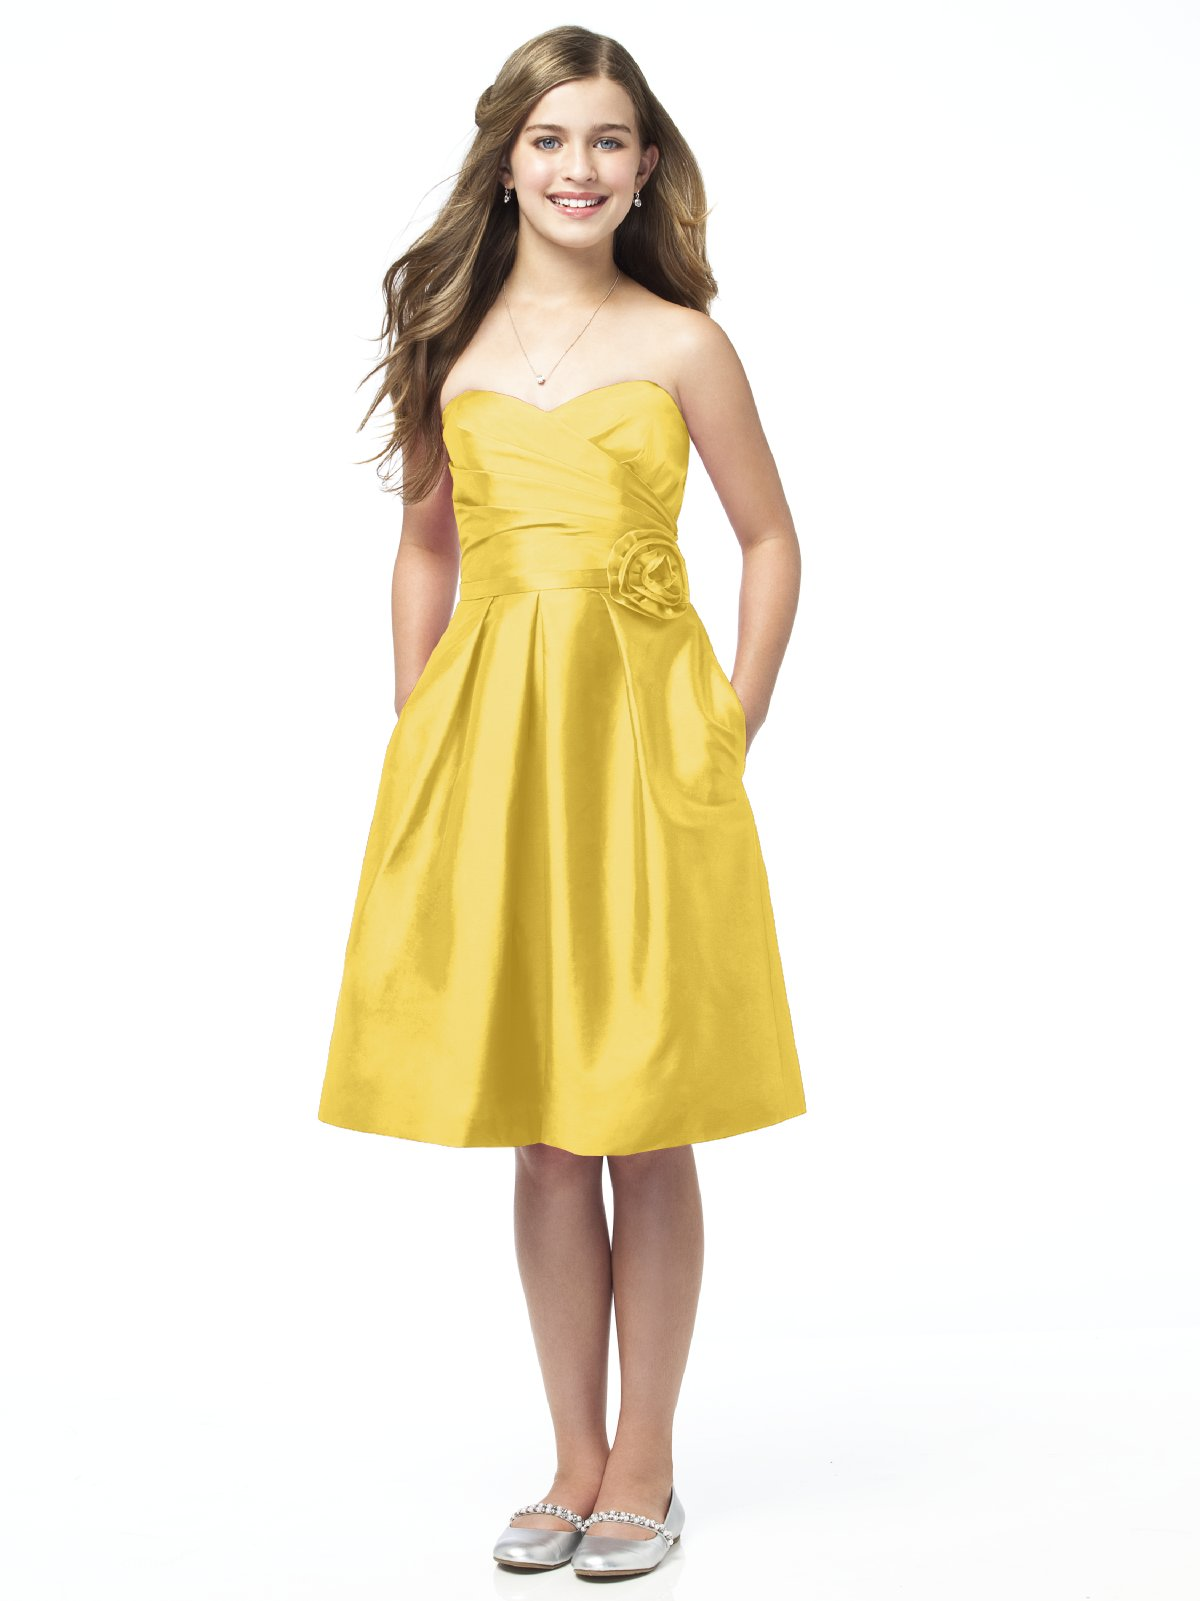 Yellow A Line Strapless Sweetheart Zipper Knee Length Satin Prom Dresses With Flowers And Pockets